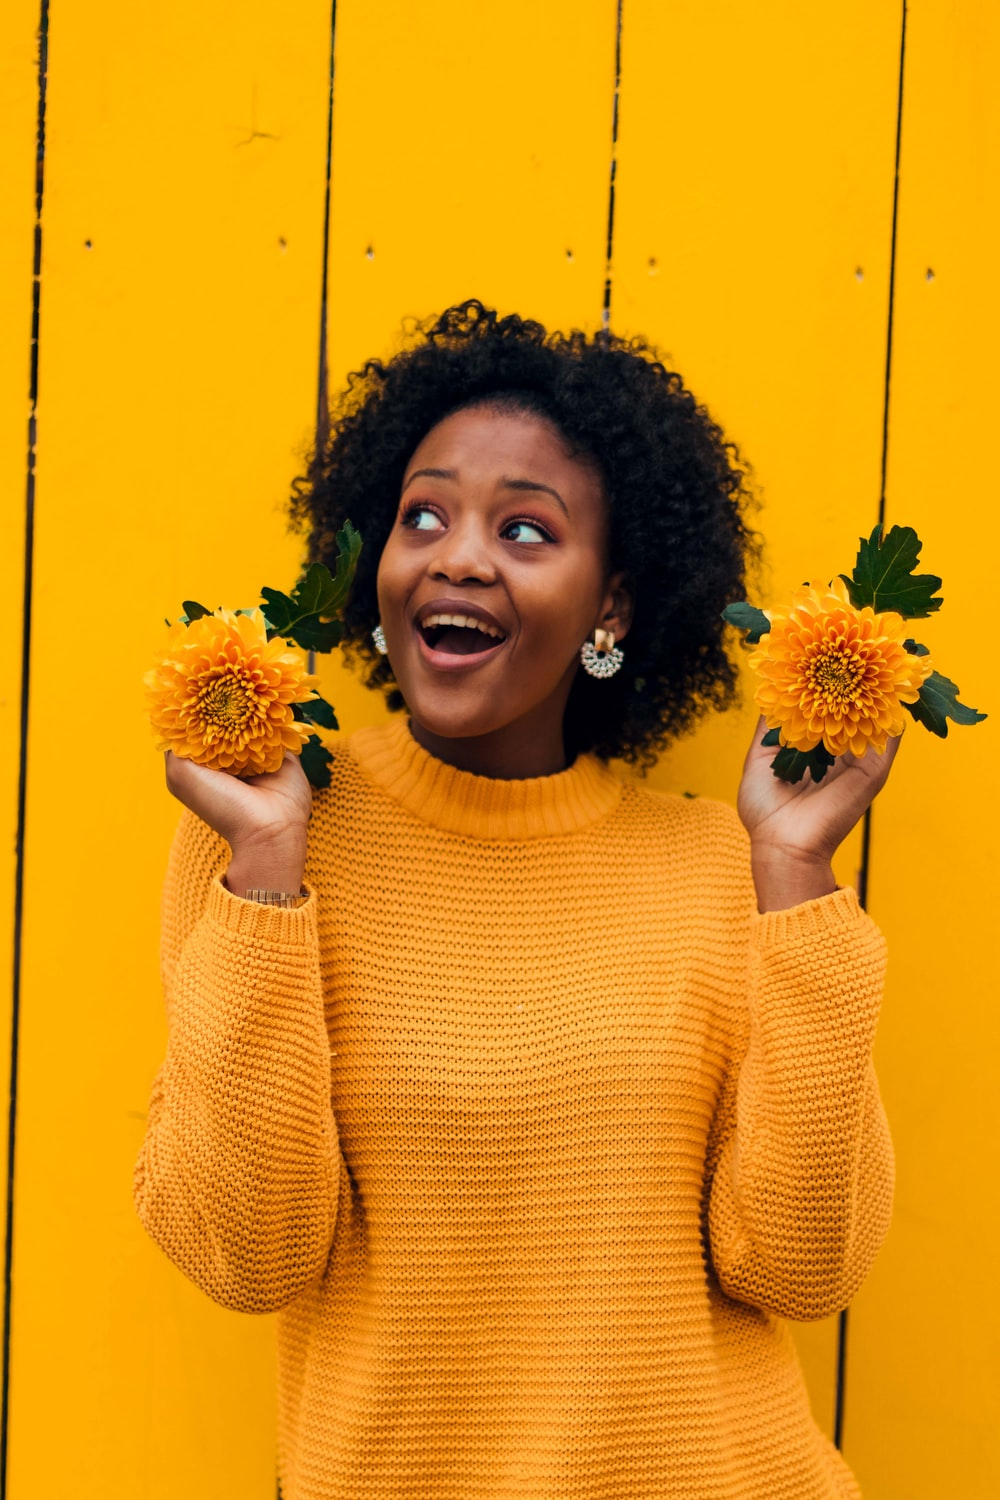 woman standing beside yellow wall while holding yellow flowers